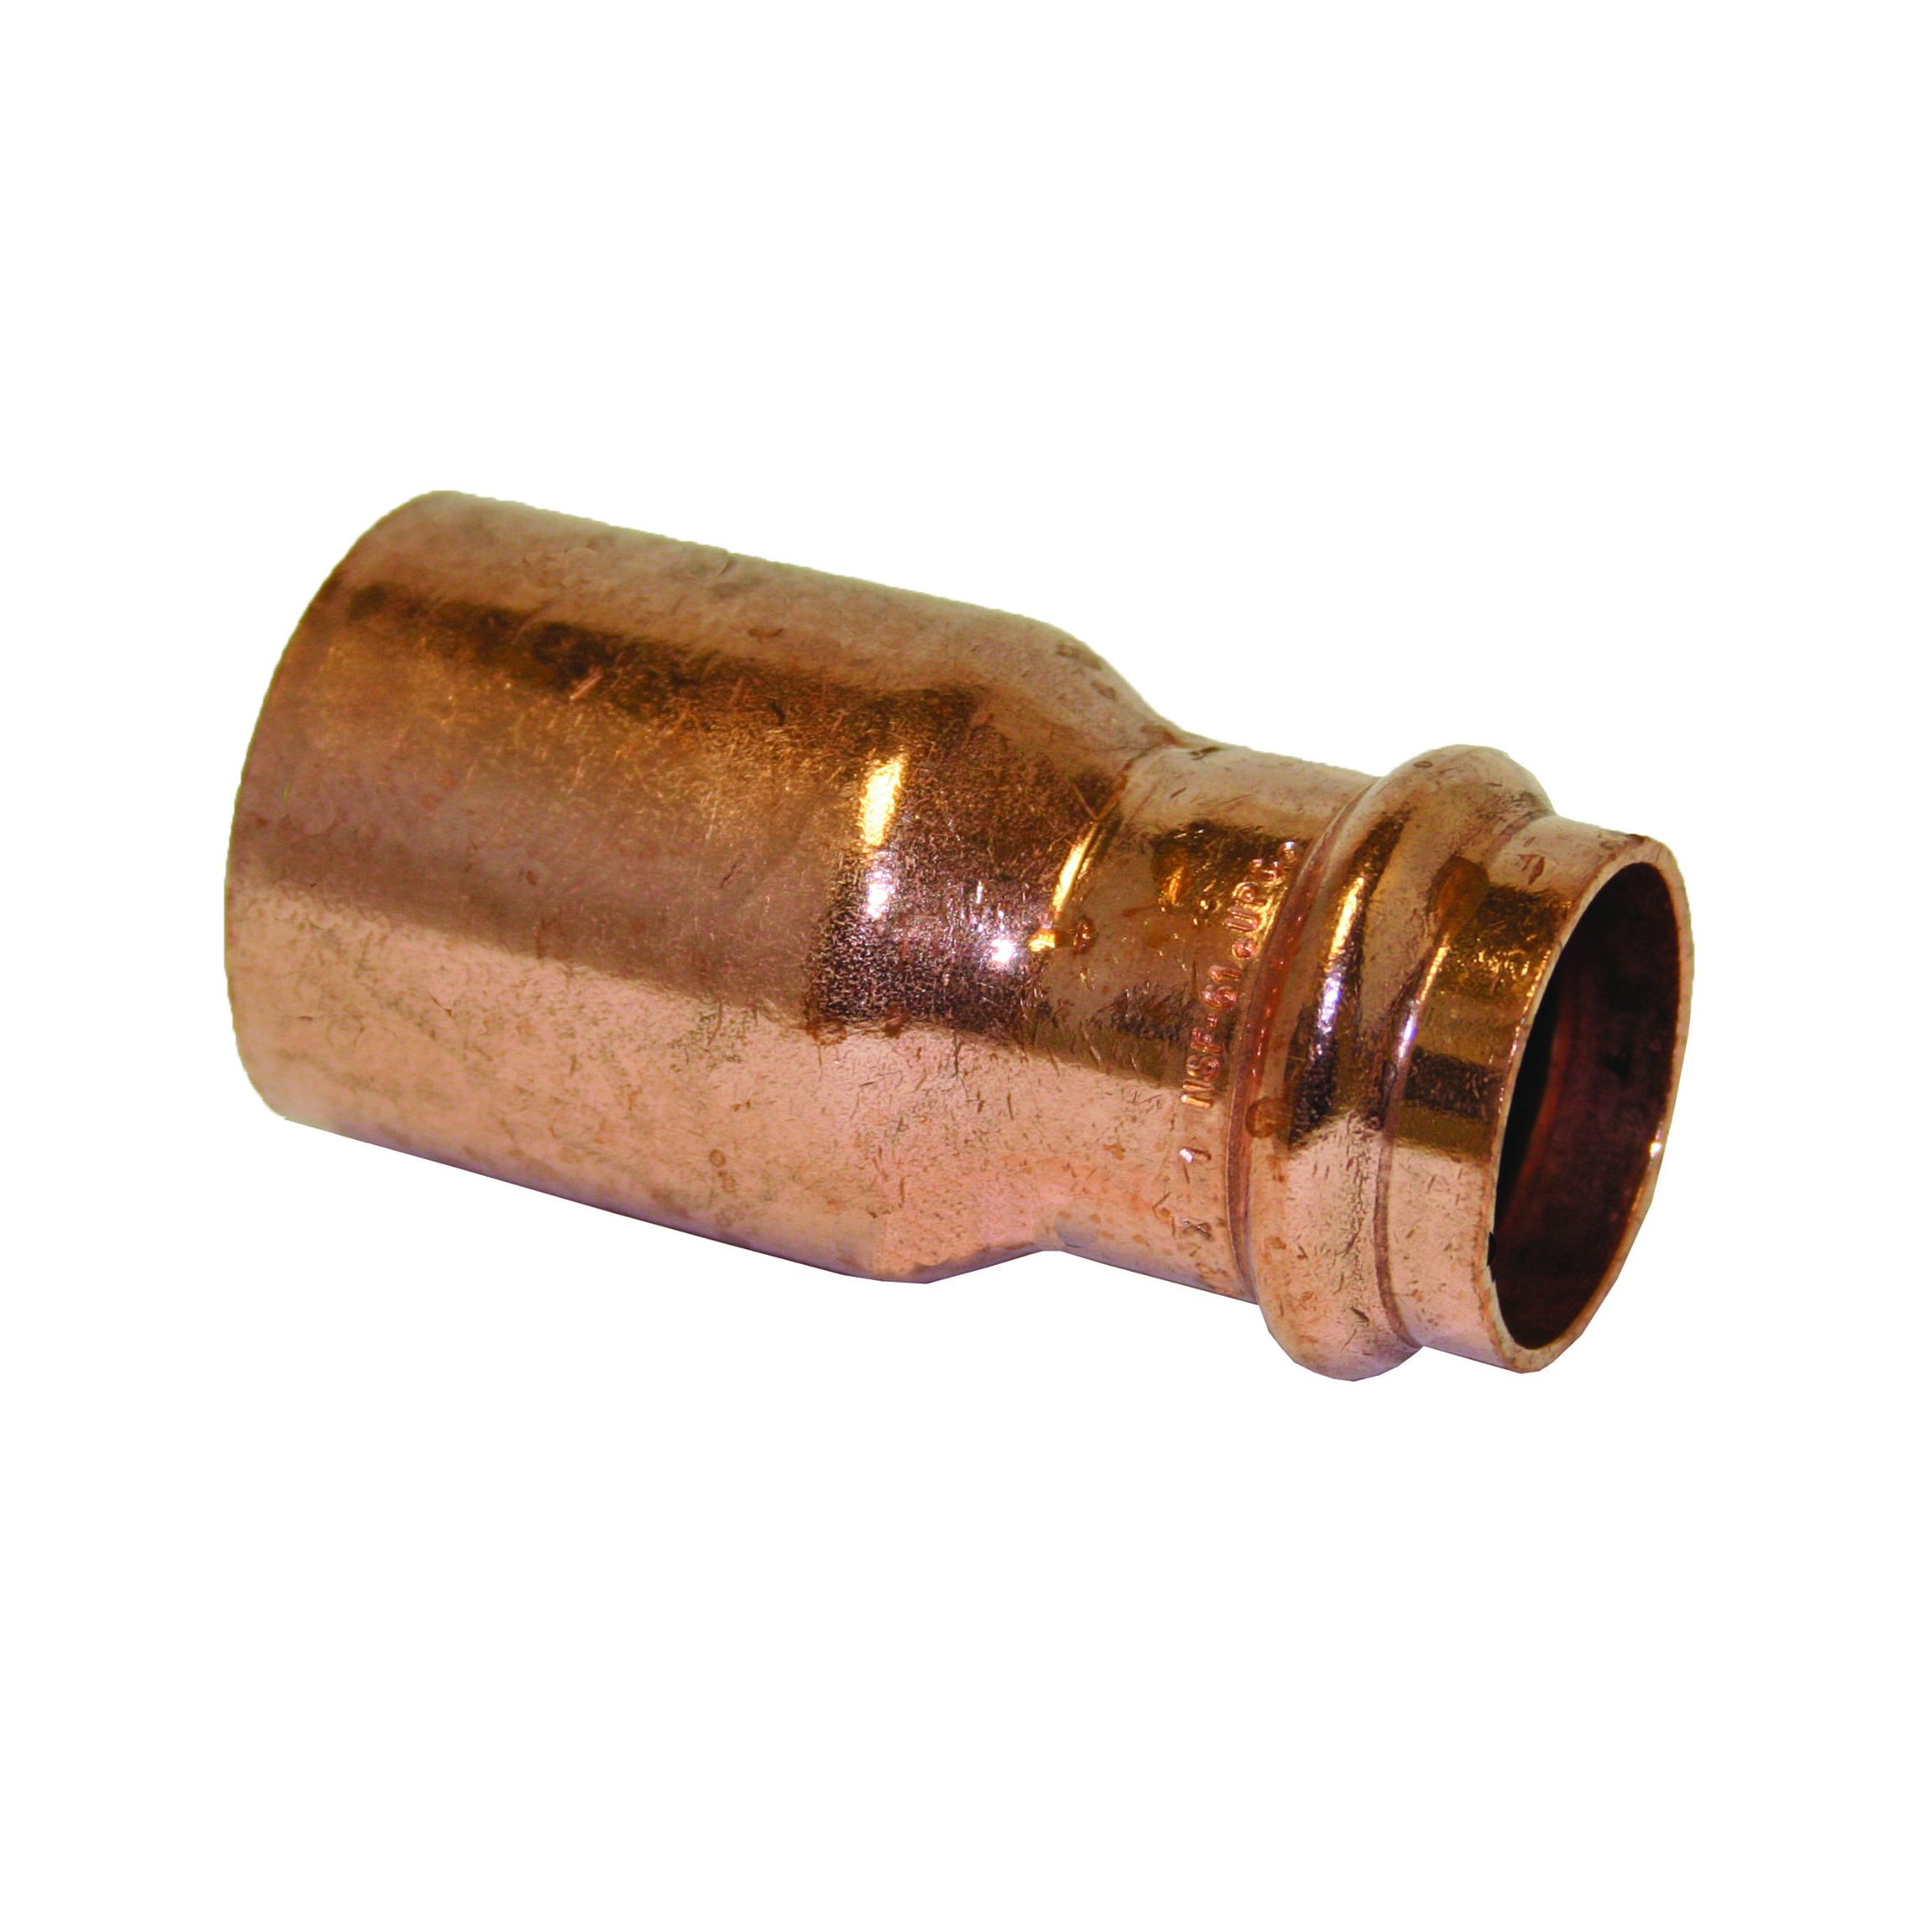 EPC Apollopress® 10075164 Copper Small Diameter Press Reducer, 2 in x 1-1/2 in, Fitting x Copper, Domestic